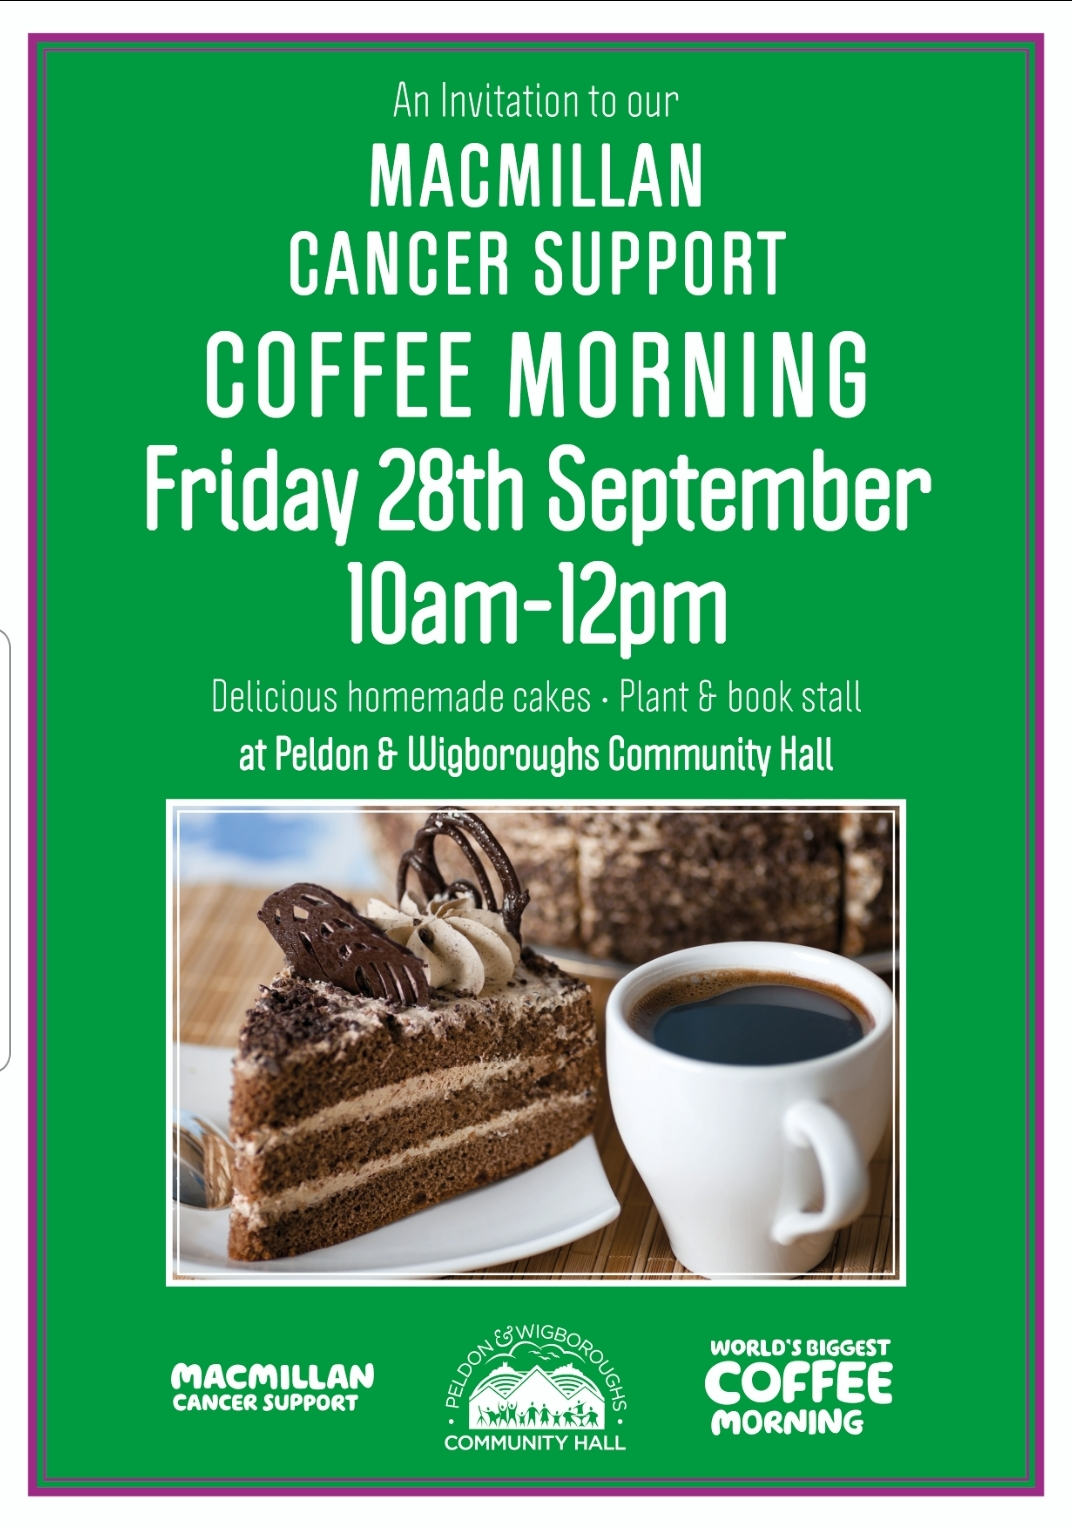 An Invitation to Peldon's Macmillan Coffee Morning